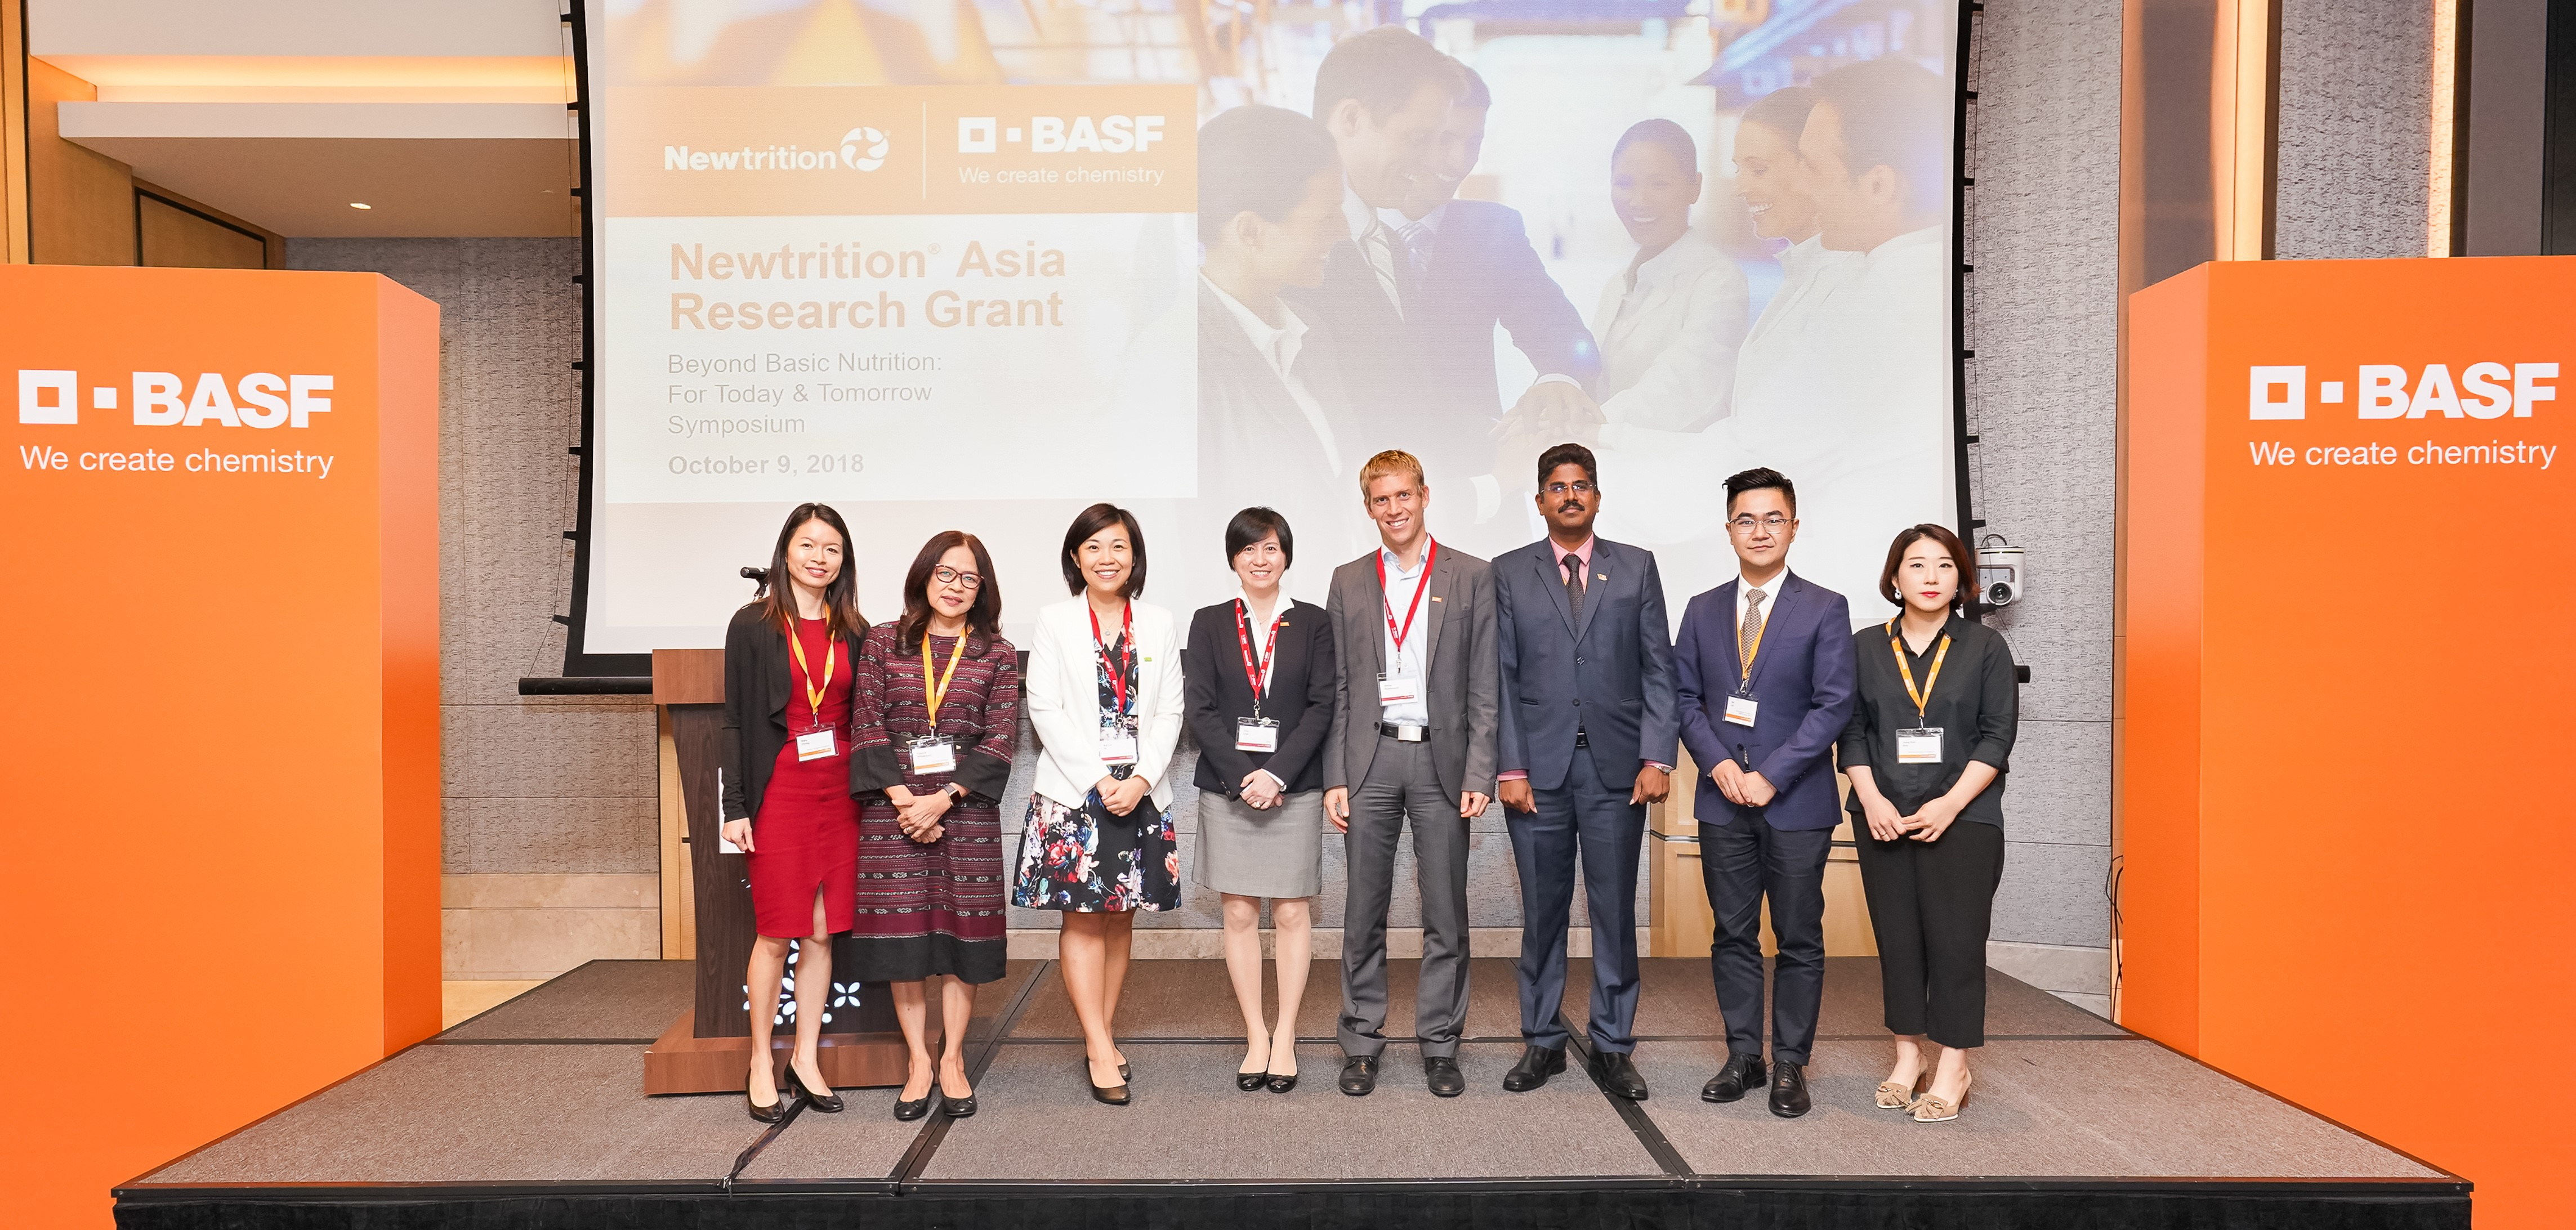 Winners Of Newtrition Asia Research Grant 2018 To Address Pressing Health Concerns In Asia With New Clinical Studies